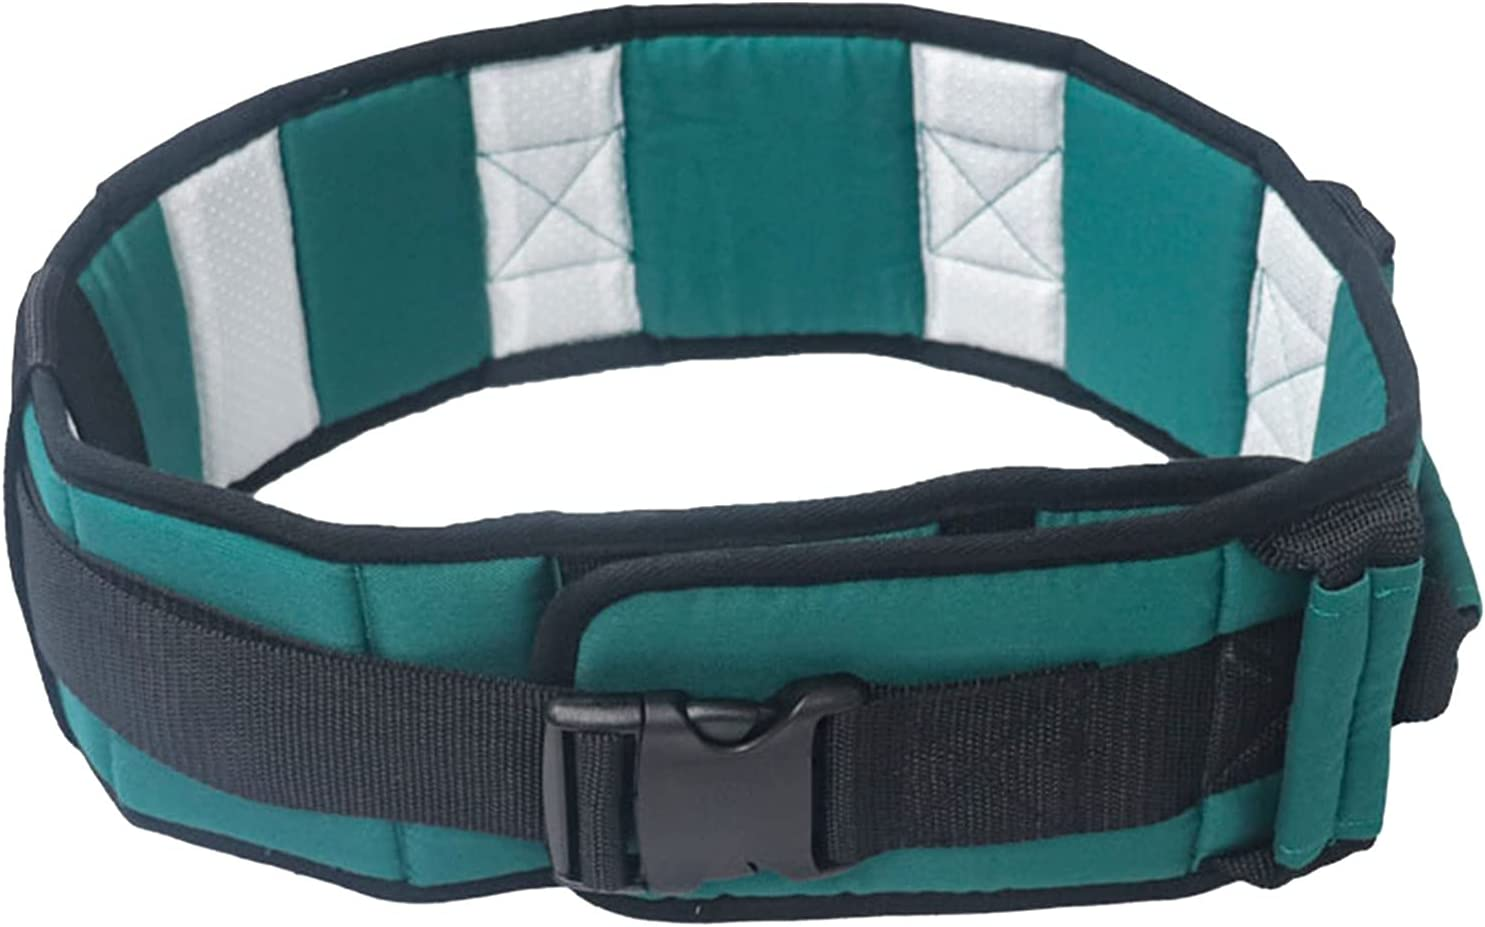 N Excellence \ A Gait Belt Patient Walking Max 85% OFF Han Aid Transfer with